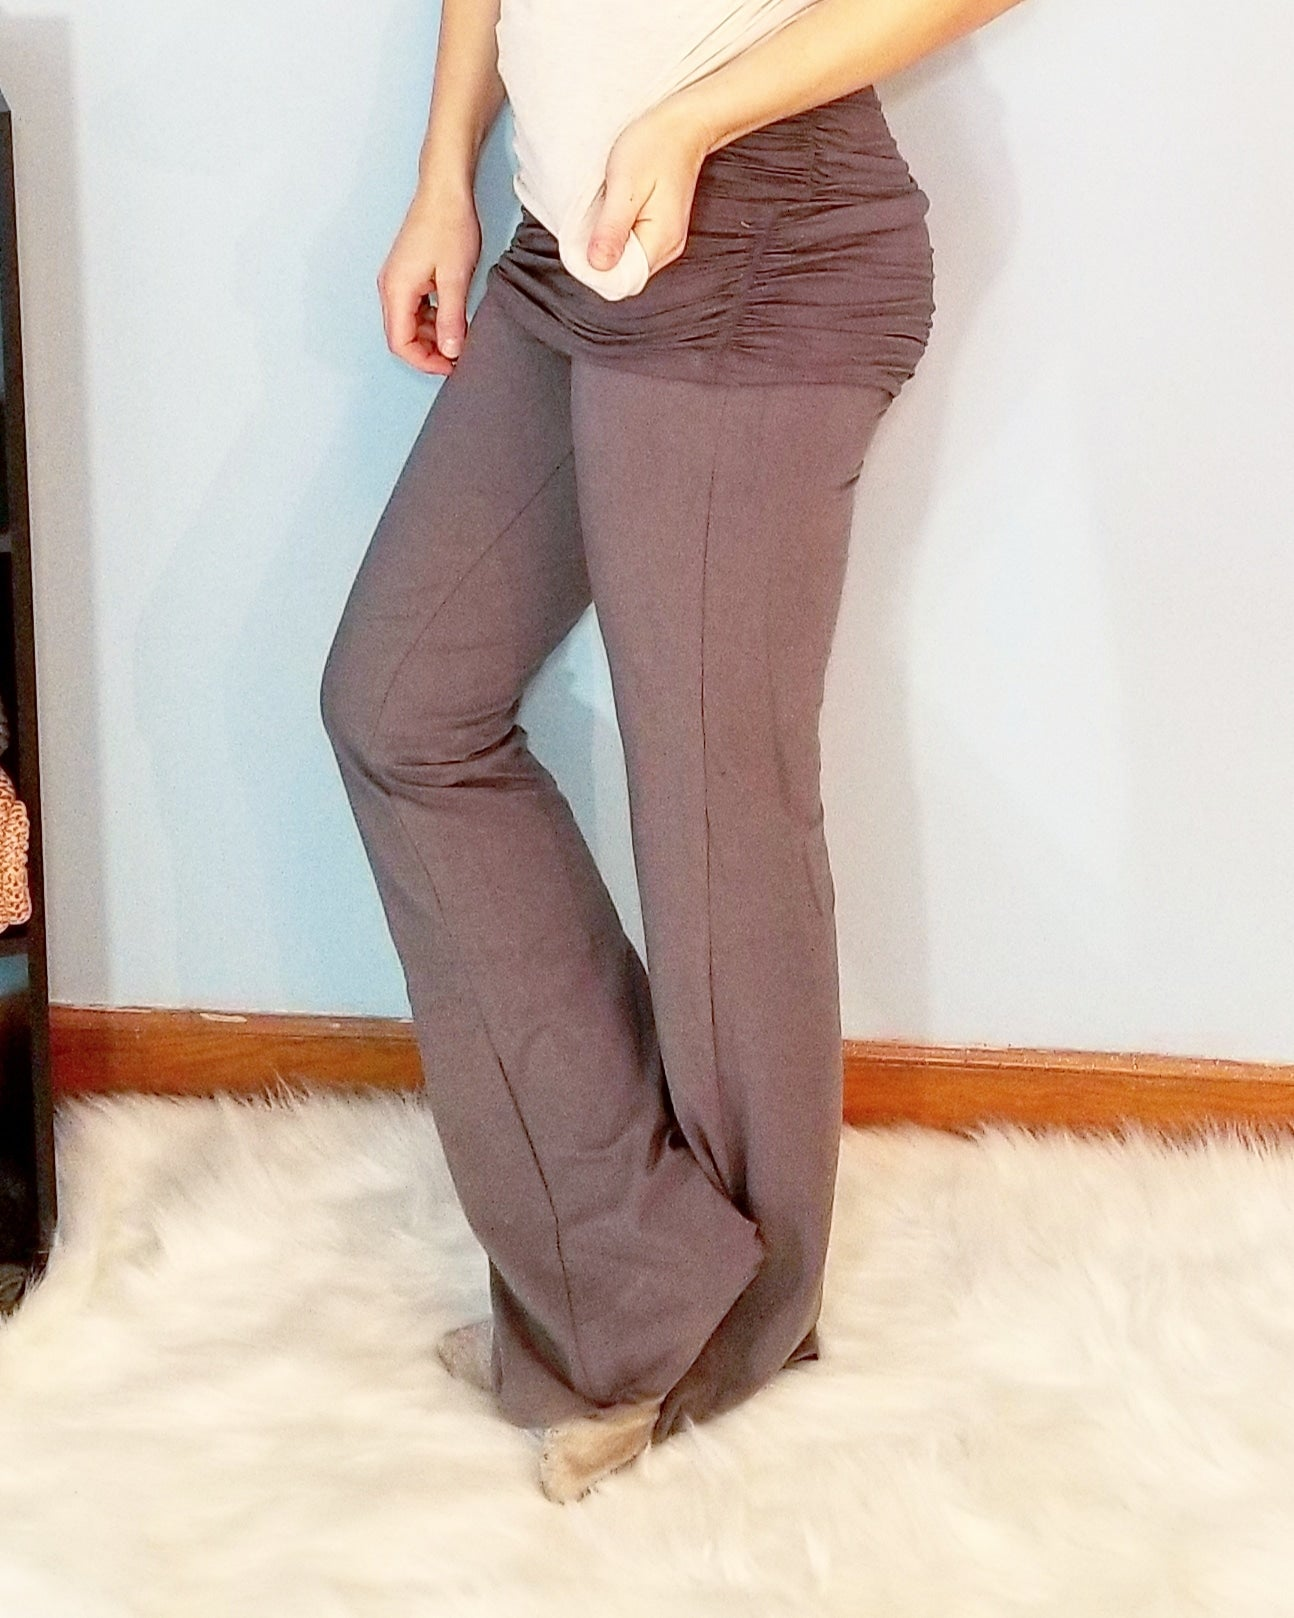 1855e802192b7 Corie Skirted Yoga Pants - Northern Wonder Boutique